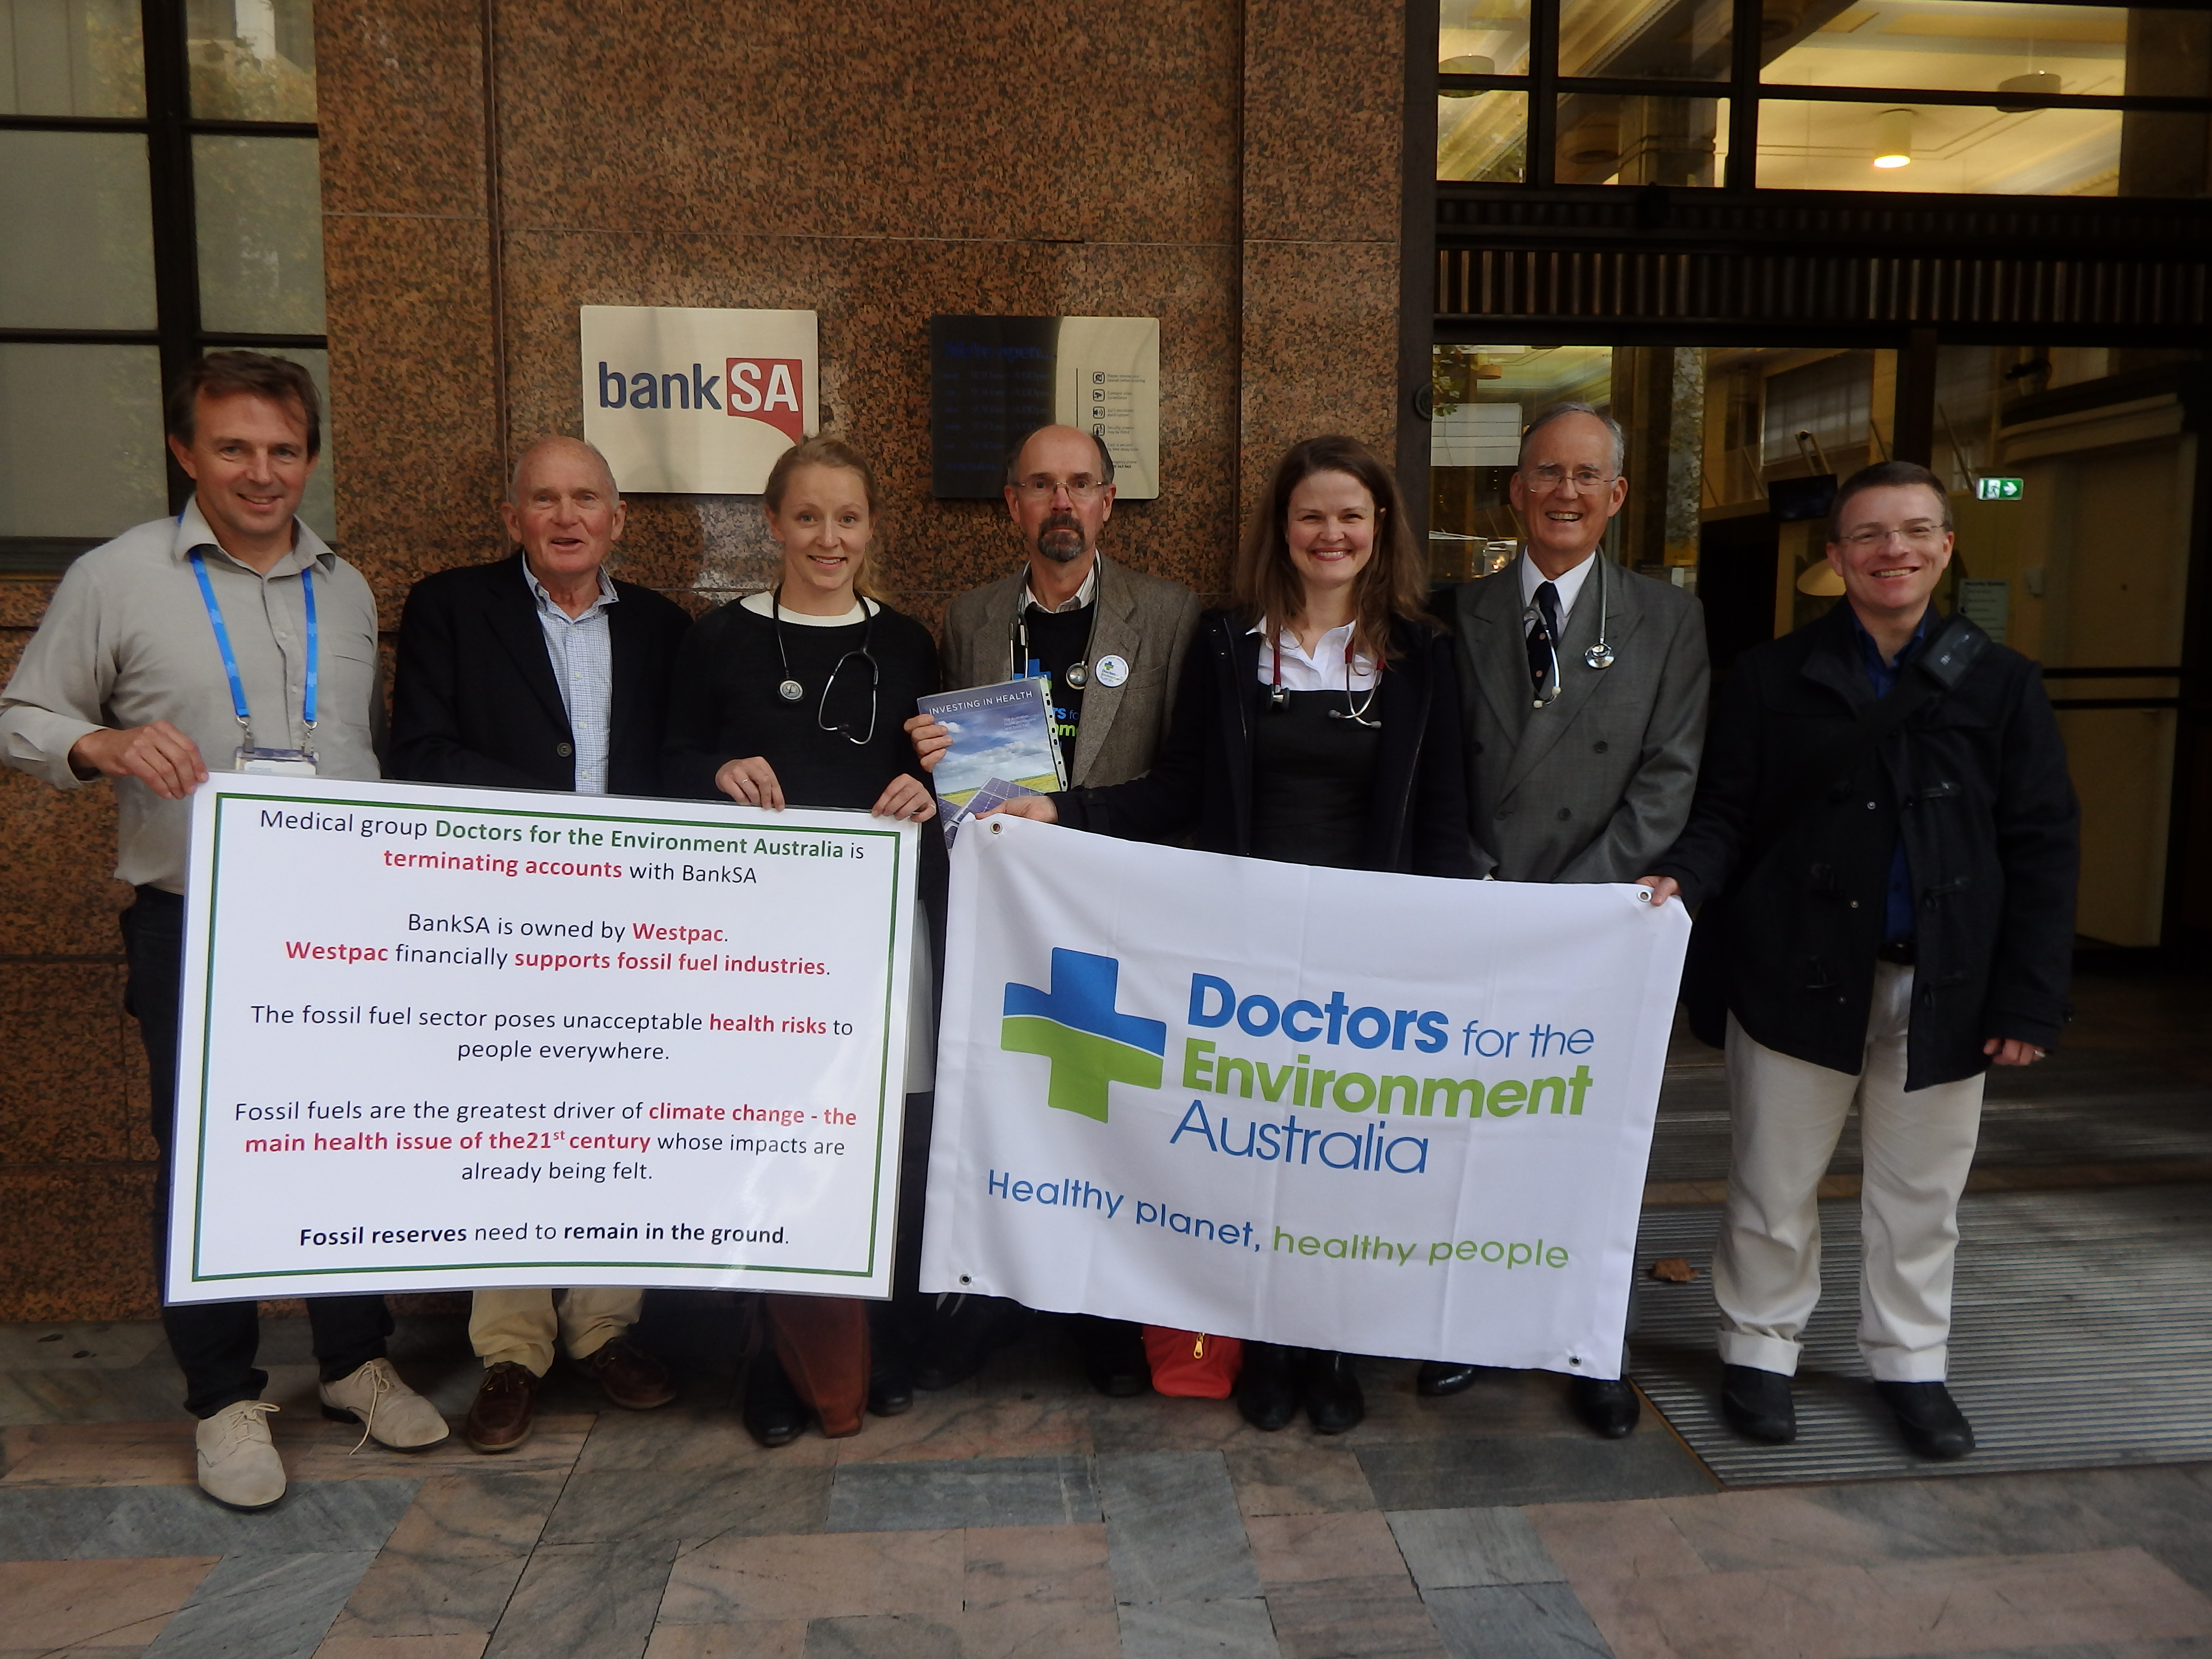 Where does your bank stand on fossil fuels? A call for health professionals to divest